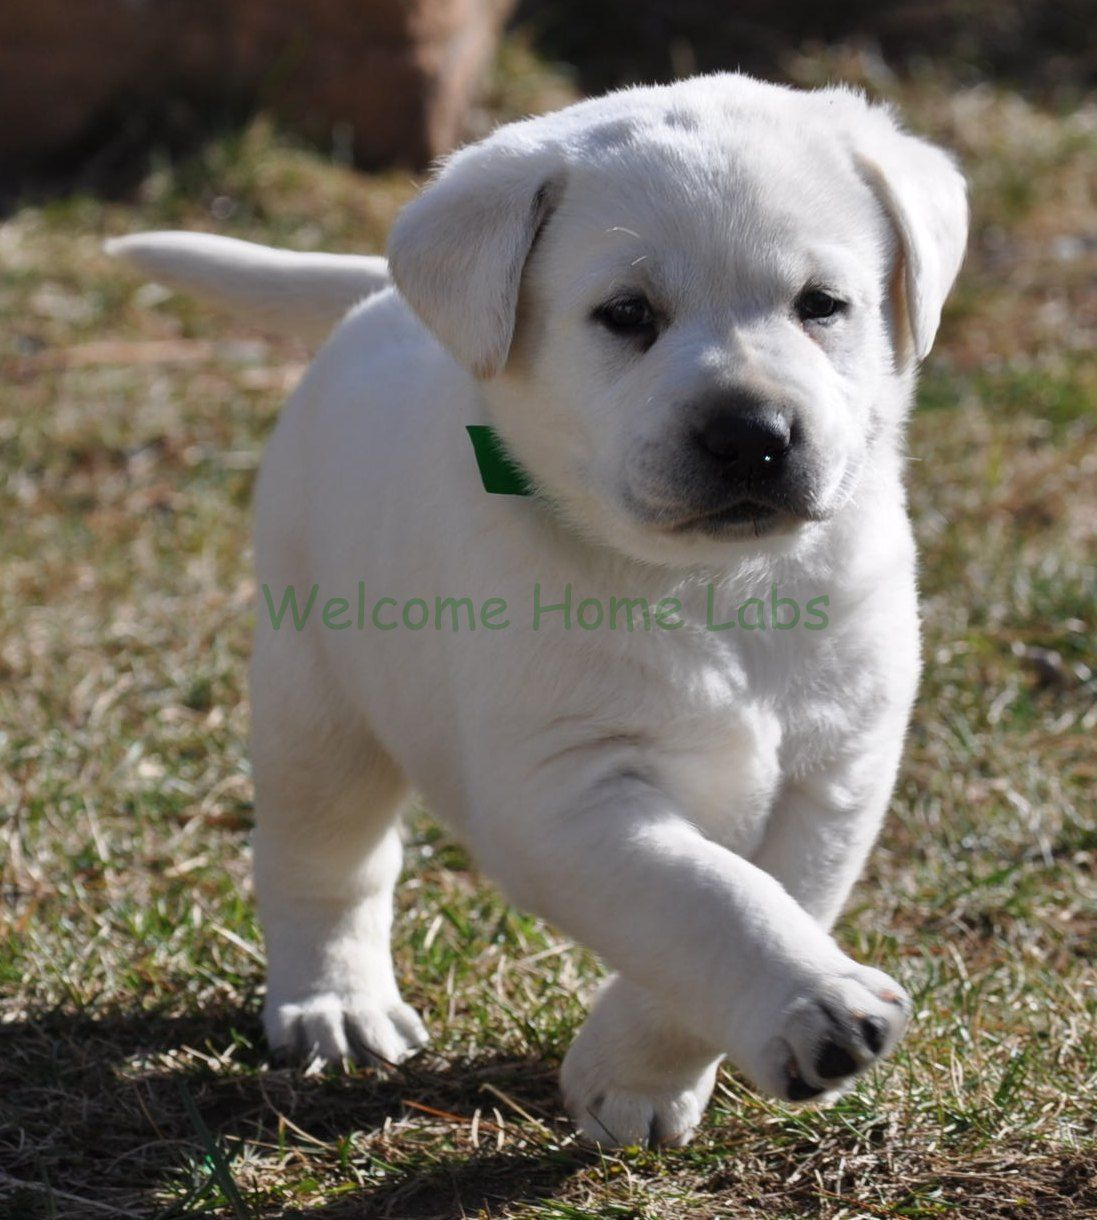 Sparky Waffle The Labrador Puppy From Welcome Home Labs Mn Labrador Puppy Puppies Labrador